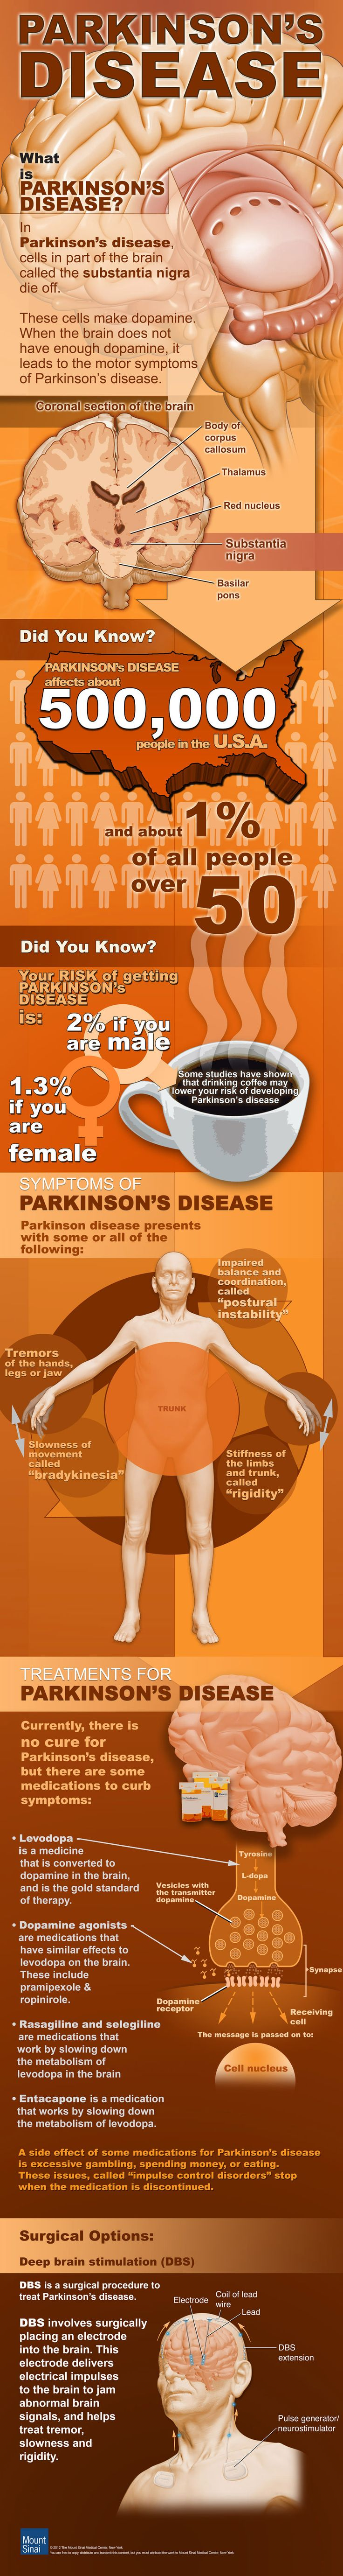 Parkinsons Disease Infographic